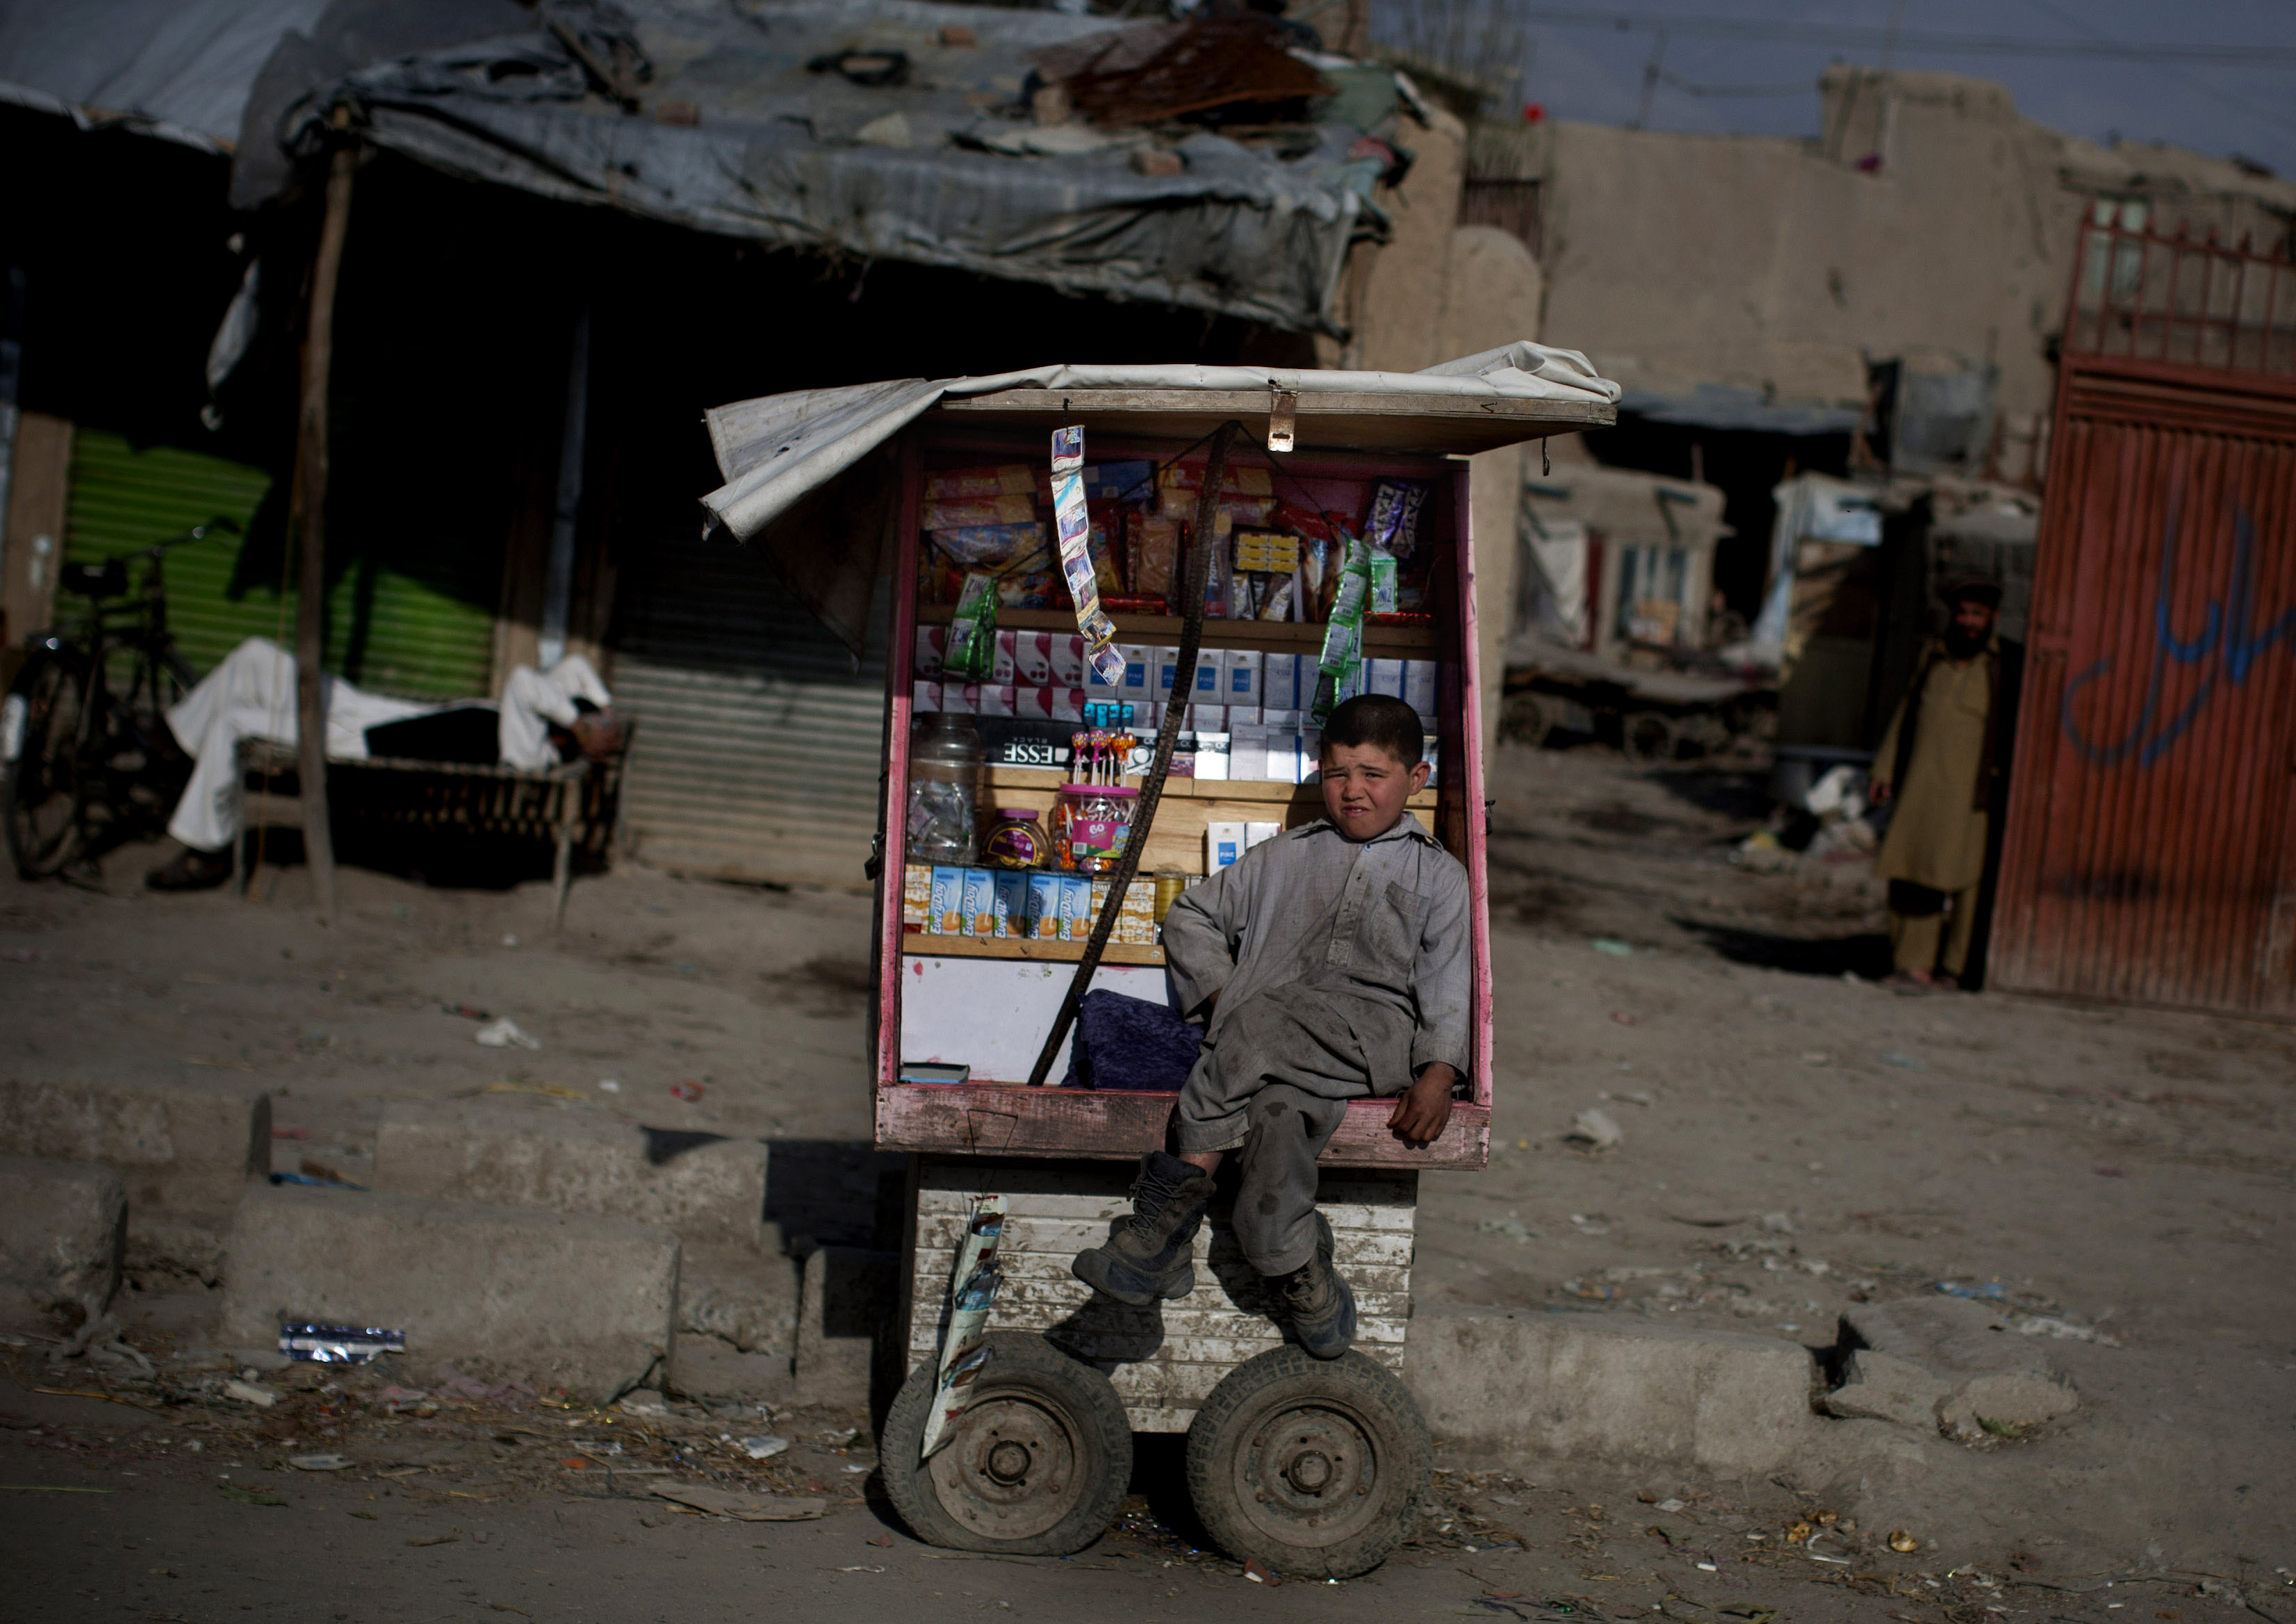 An Afghan boy sits on his cart as he waits for customers in the old town of Kabul, Afghanistan, Sunday, April 7, 2013.